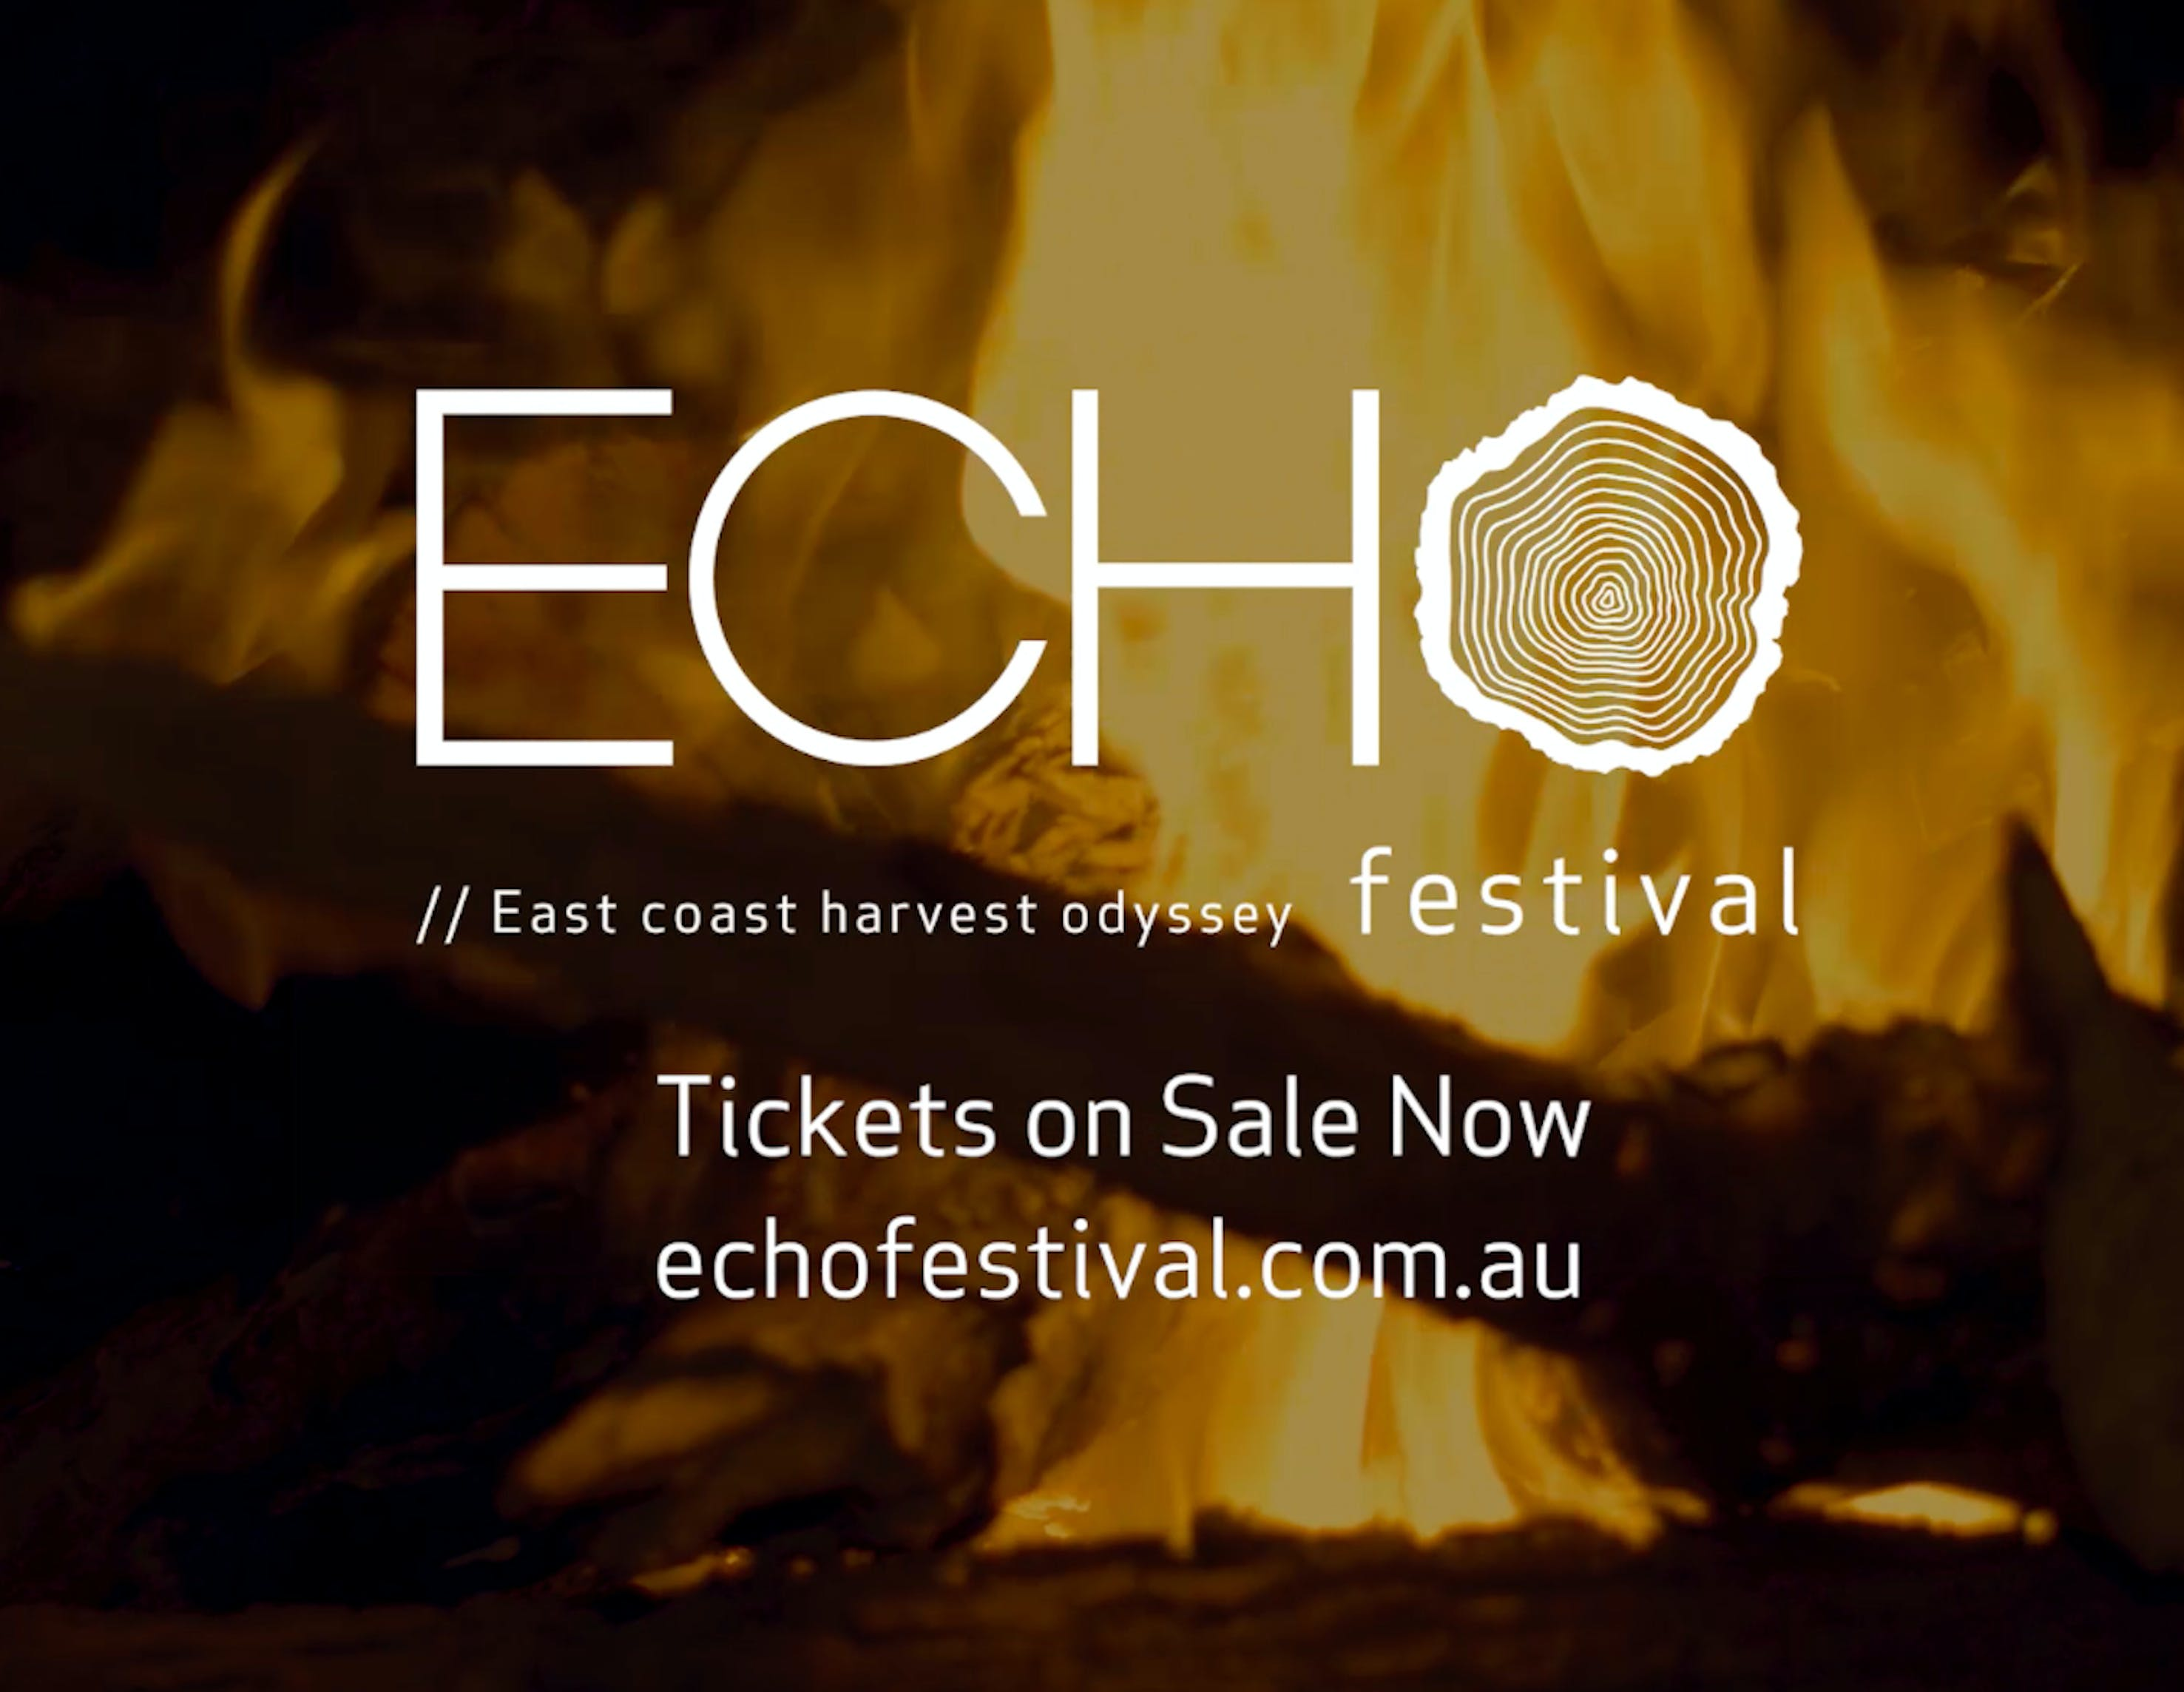 ECHO Festival - East Coast Harvest Odyssey 2021 - Great Ocean Road Tourism